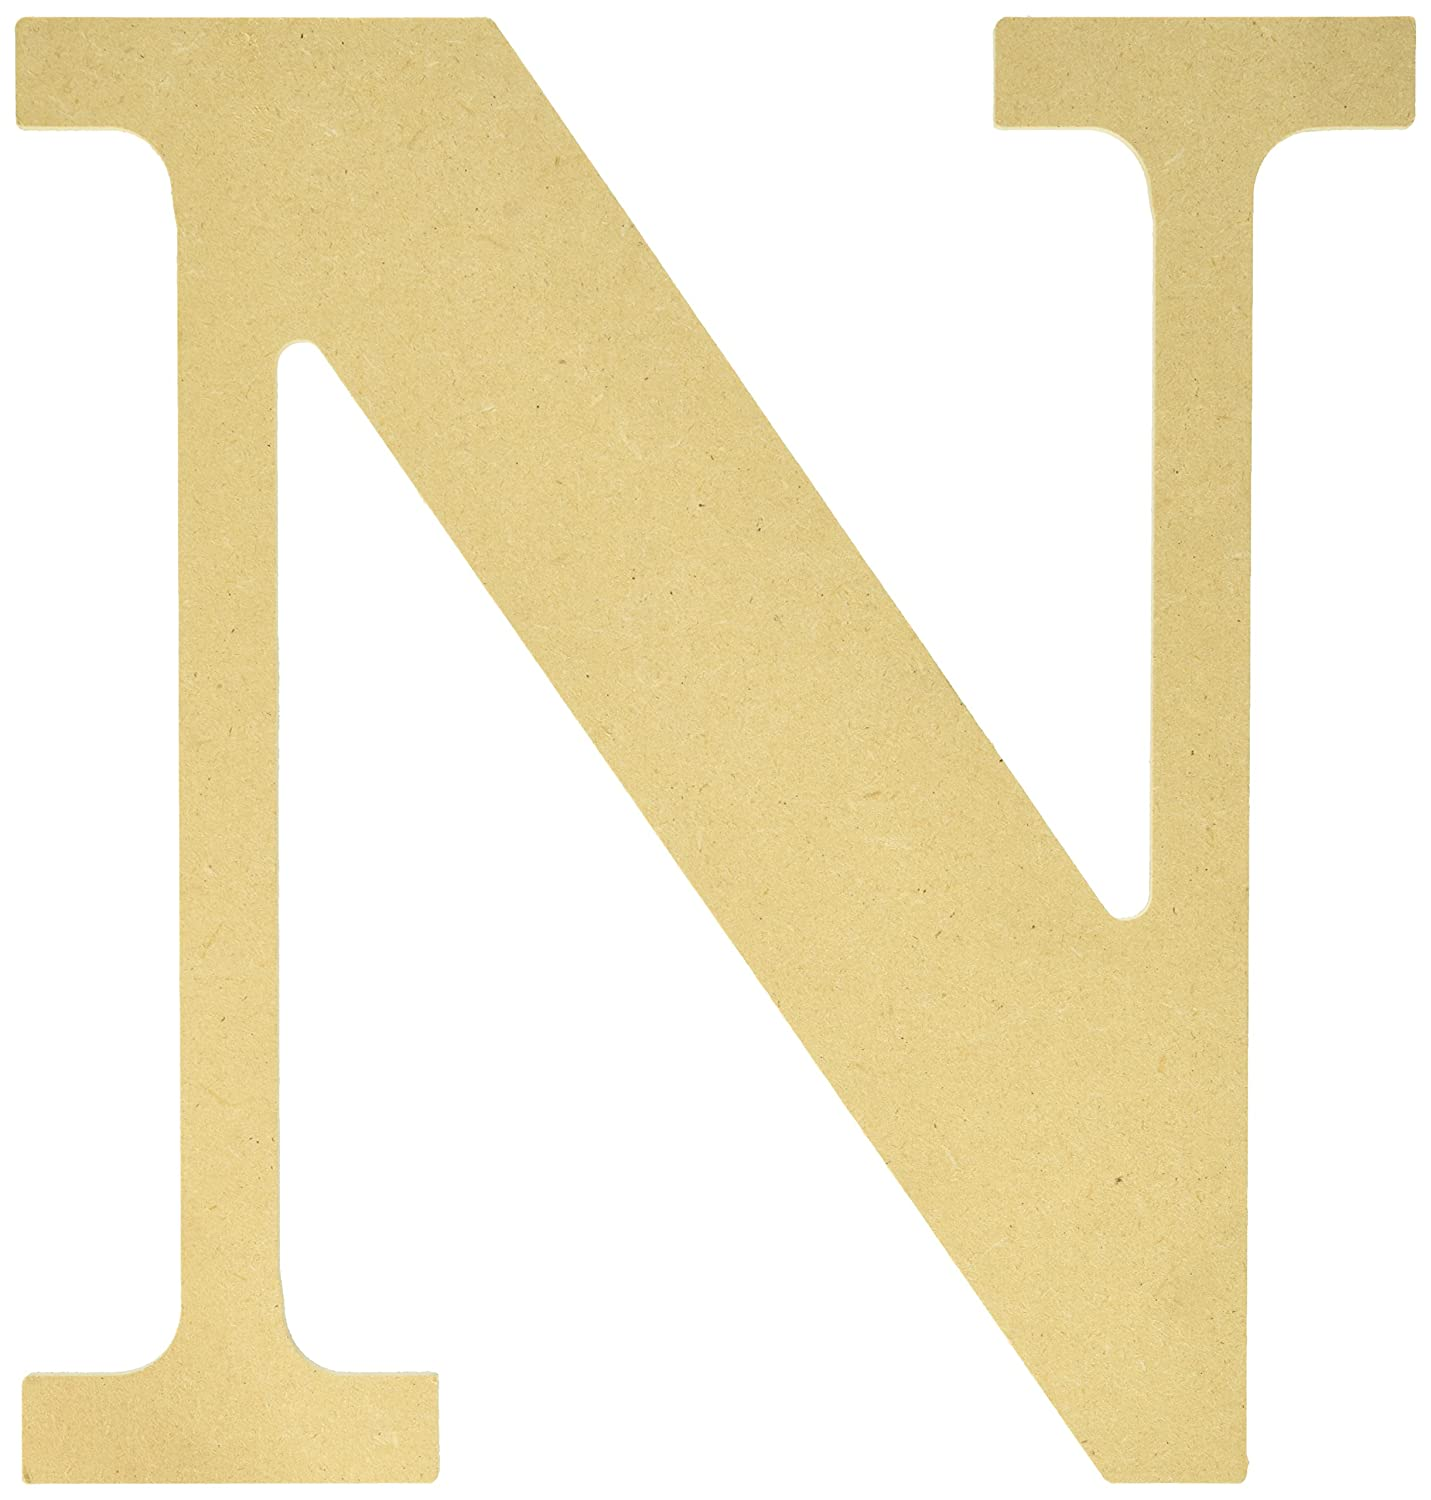 MPI MDF Classic Font Wood Letters and Numbers, 9.5-Inch, Letter-N MDF9-L414